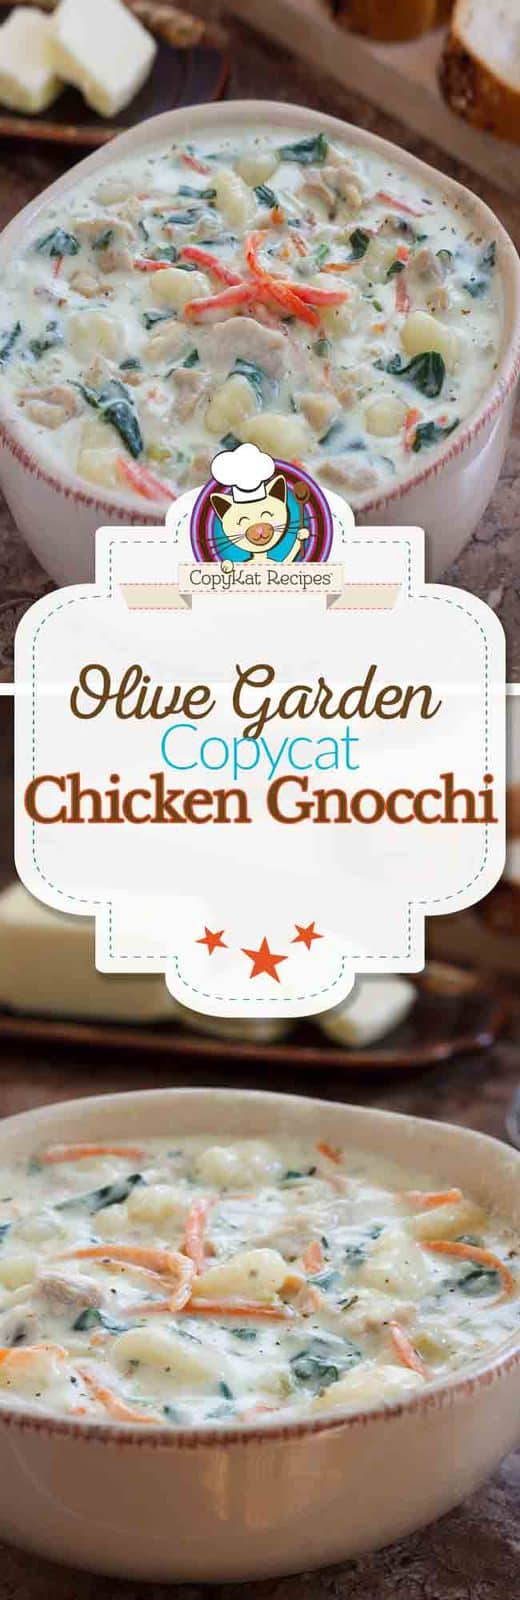 Learn how to make your own homemade copycat version of the Olive Garden Chicken Gnocchi Soup. #soup #copycat #olivegardn #gnocchi #stovetop #easy #recipe